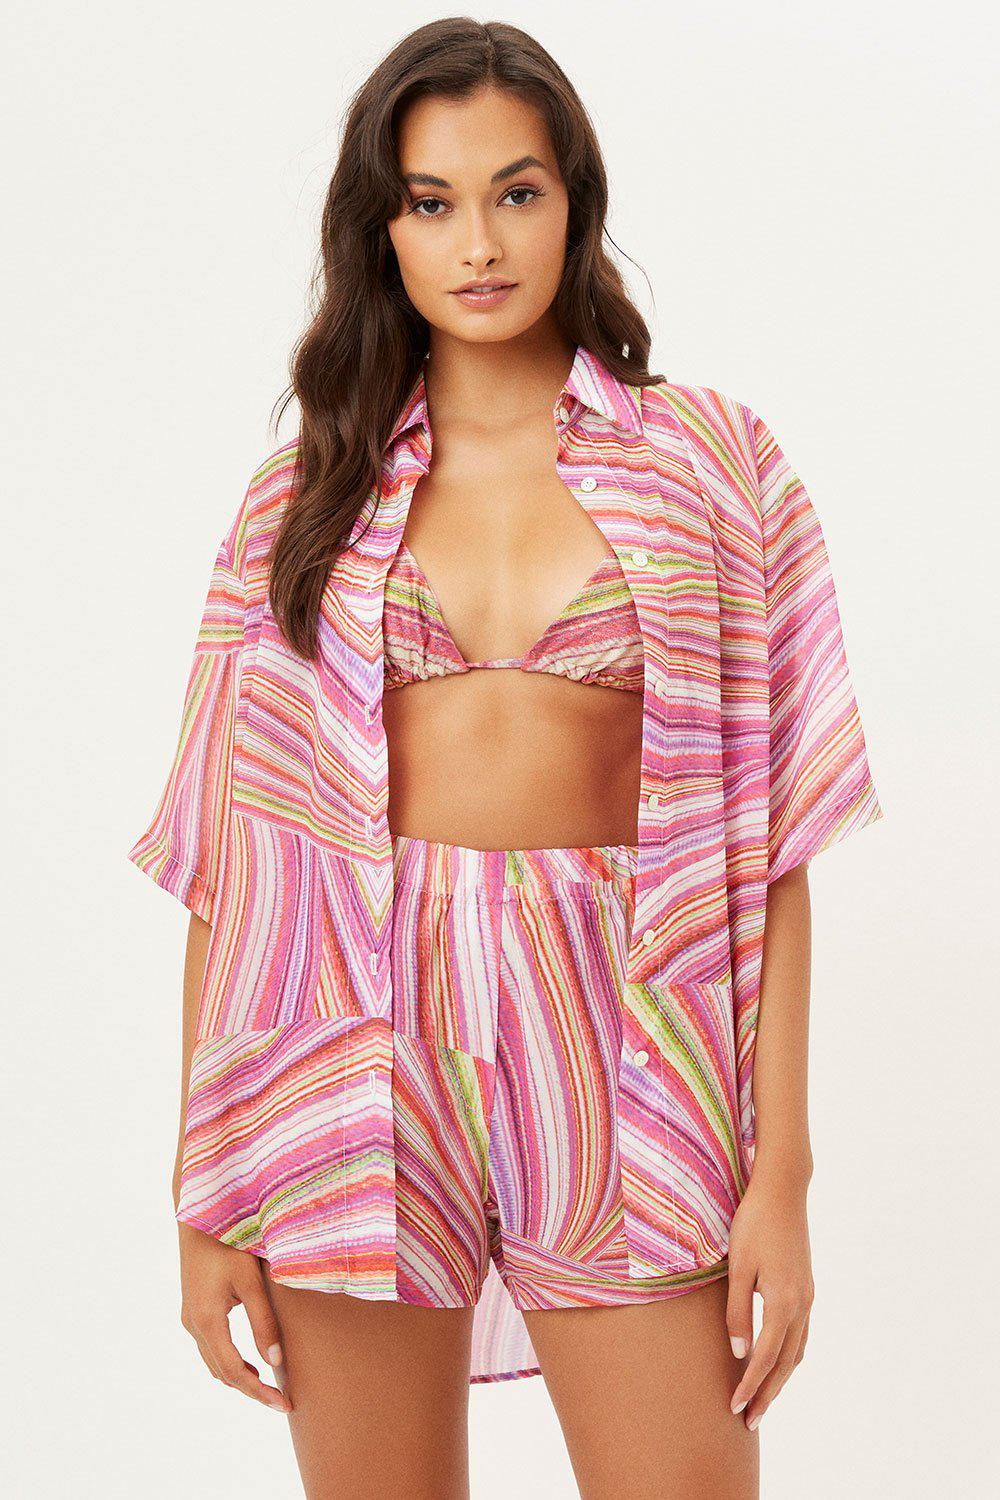 Fifi Sustainable Button Up Shirt - Dance Pink